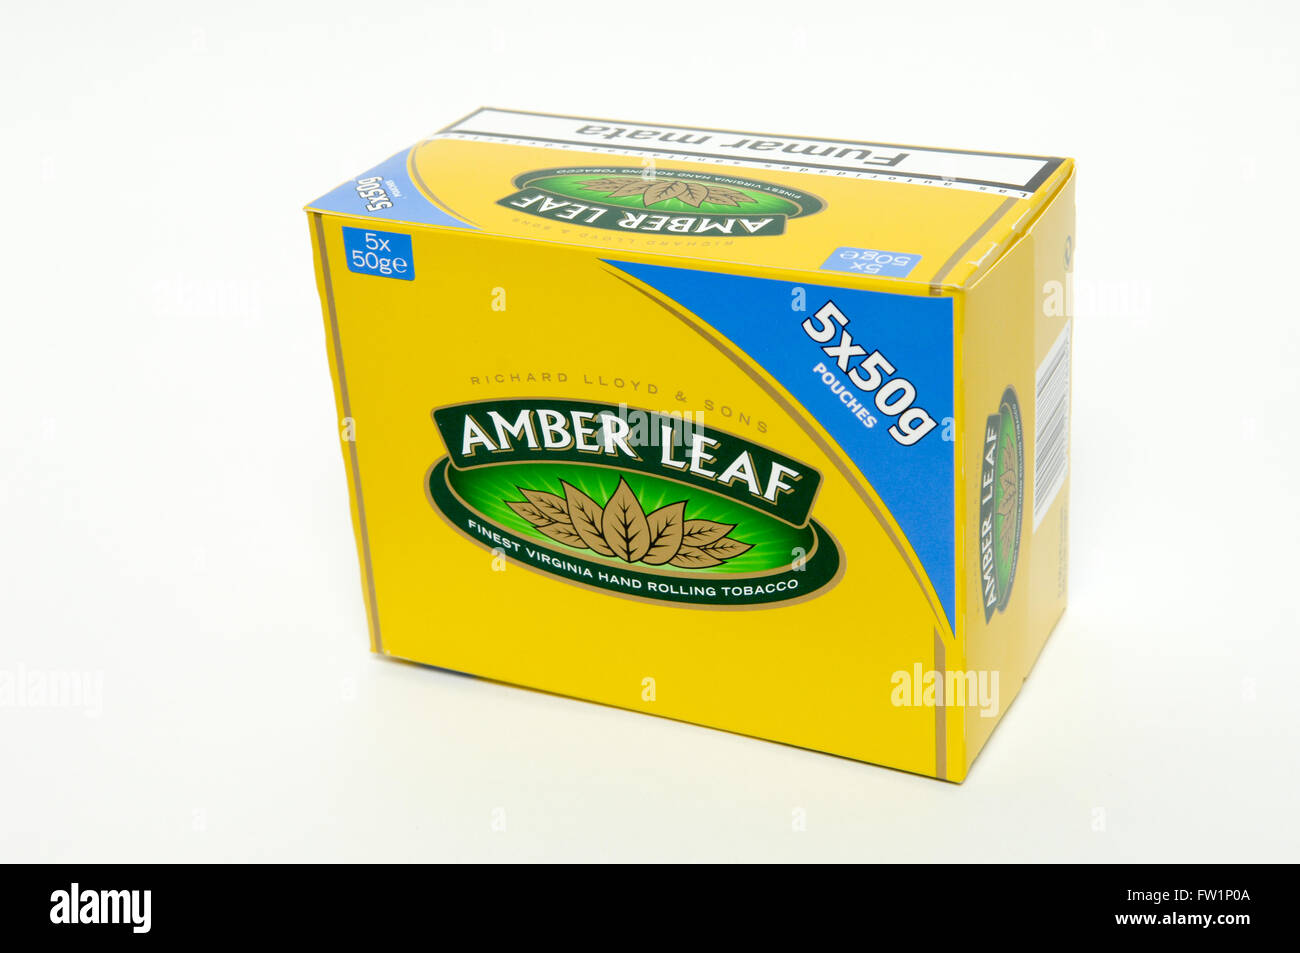 Amber Leaf Hand Rolling Tobacco 5 X 50g Boxes Stock Photo